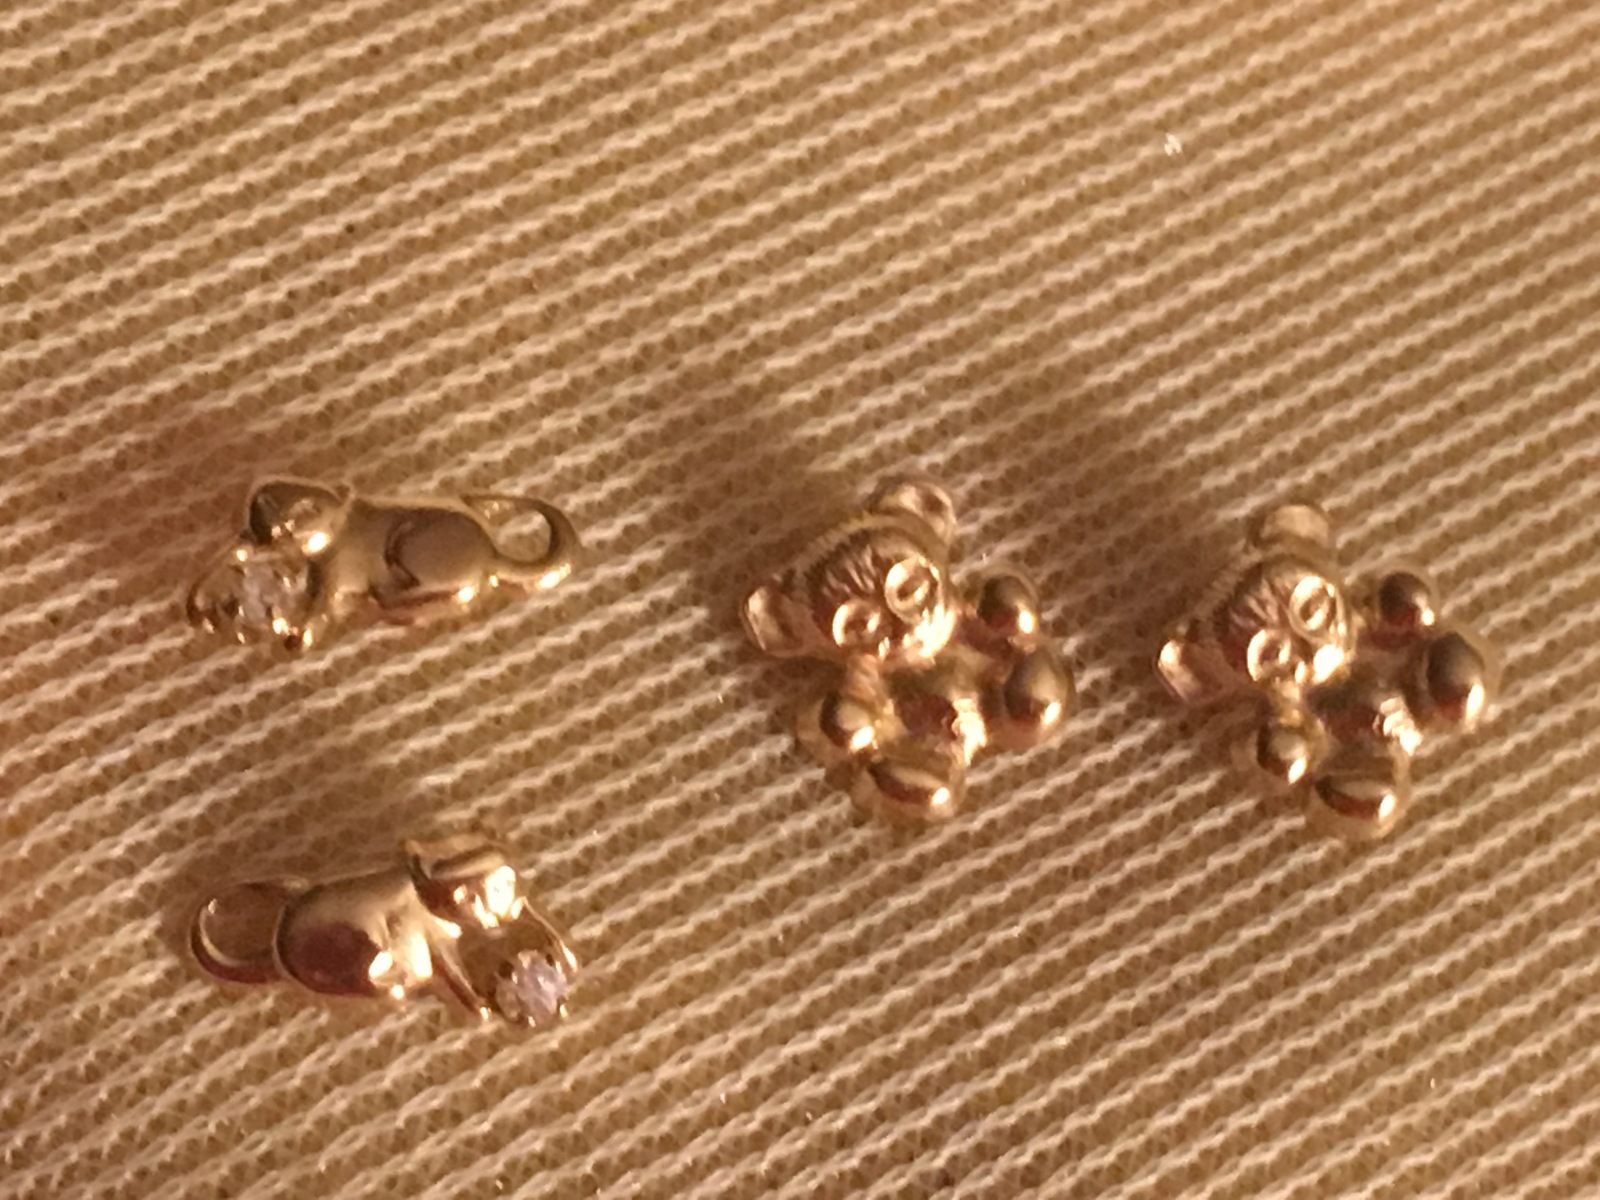 14k gold Earrings - 2 pair of kids earrings - Bears and Cats- Other